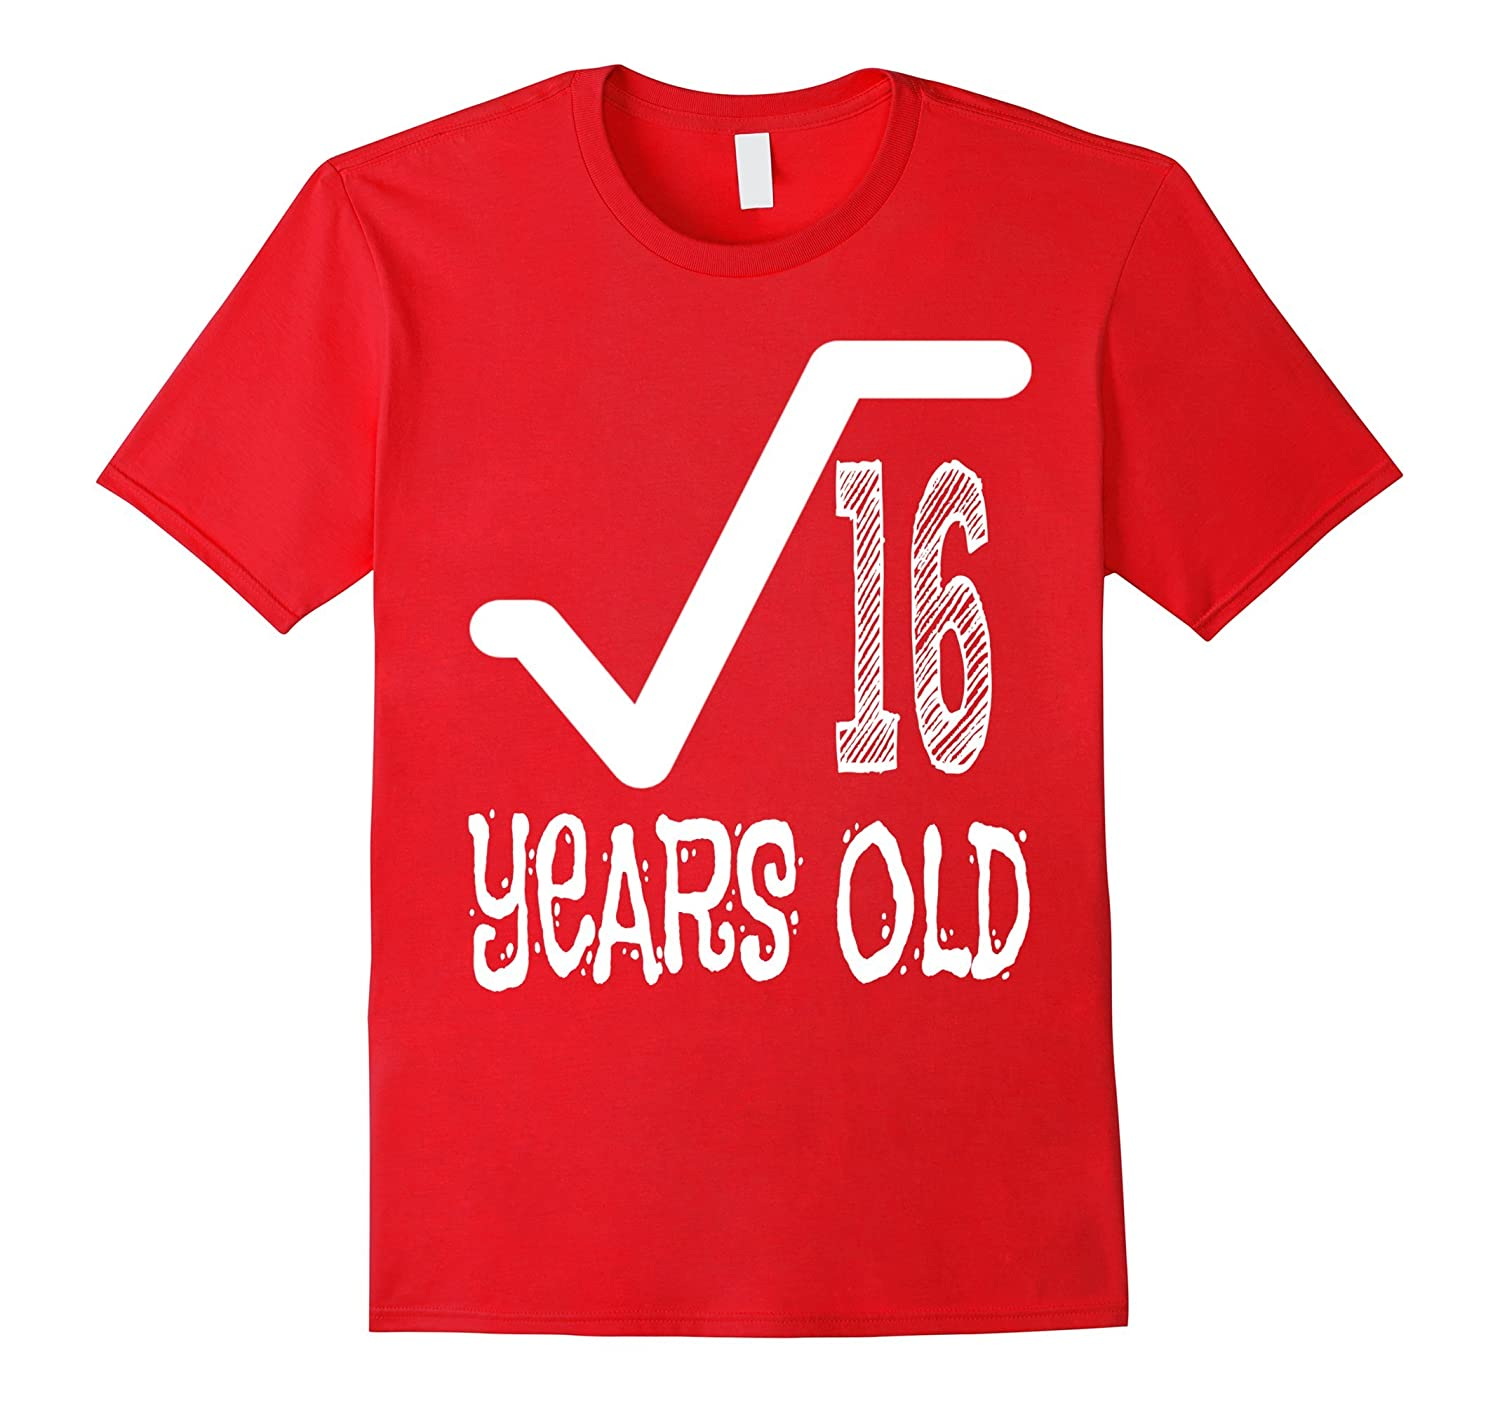 4 Years Old 4th Birthday Boy Girl Gift Dude Novelty T Shirt FL